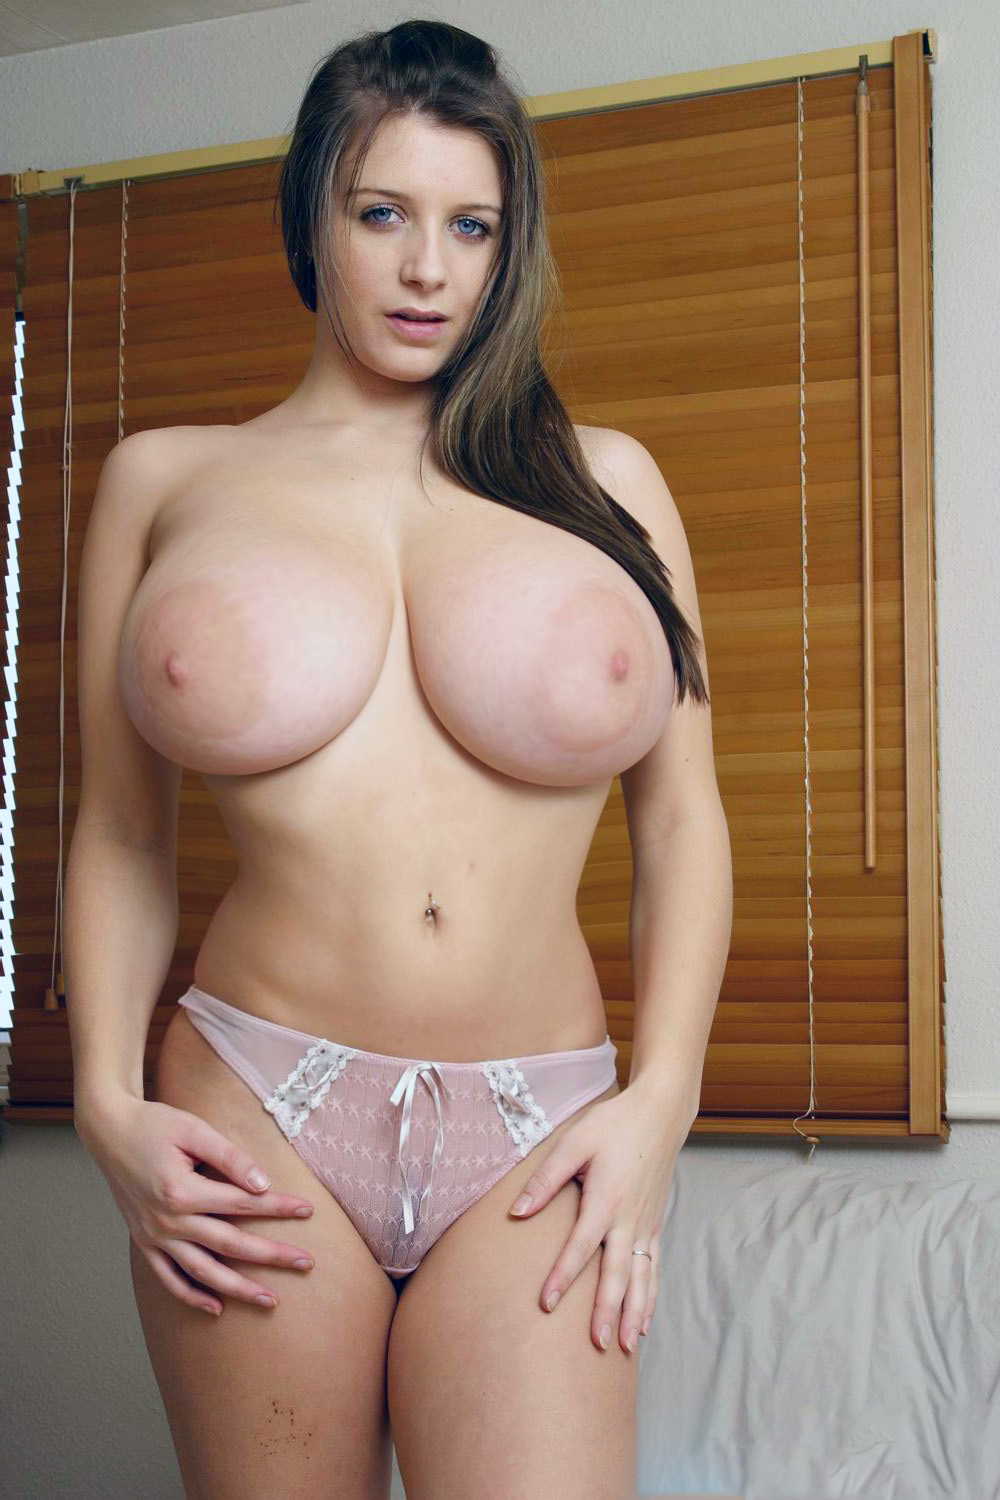 Big natural titty girls eat pussy and get fucked by a hard dick